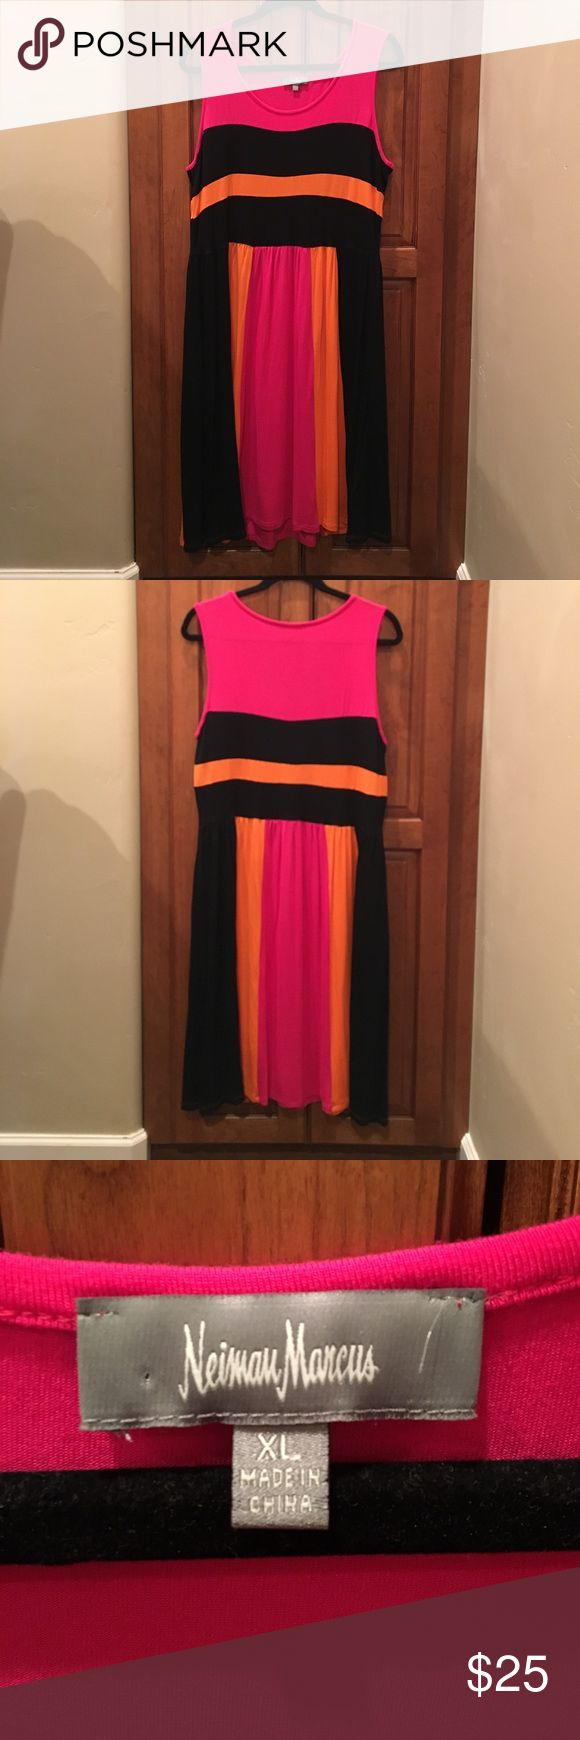 Neiman Marcus Casual Summer Dress Fun and lightweight Neiman Marcus dress that is cool and casual. The vertical lines on the bottom half are slimming.  You will love it whether you're hanging out at home, at the park or at the mall. This dress is never been worn. Neiman Marcus Dresses